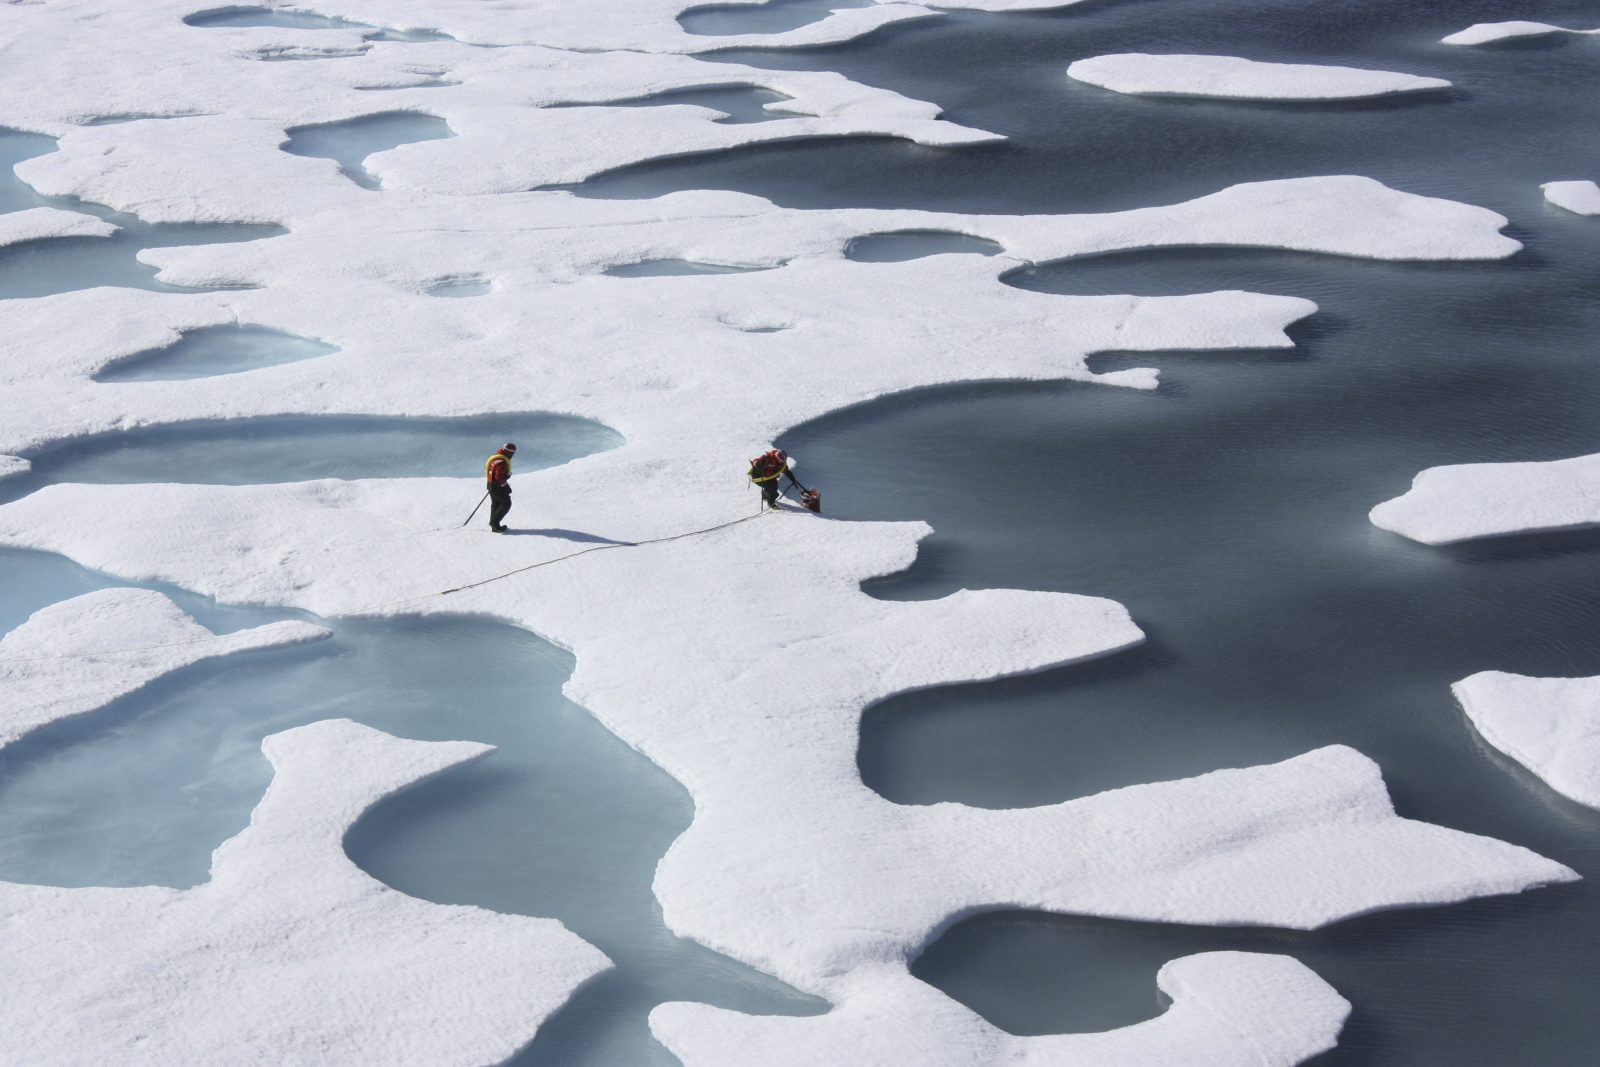 Crewmembers with the U.S. Coast Guard Cutter Healy retrieve supplies during their ICESCAPE Mission in the Arctic Ocean, July 12, 2011. (NASA via The New York Times)